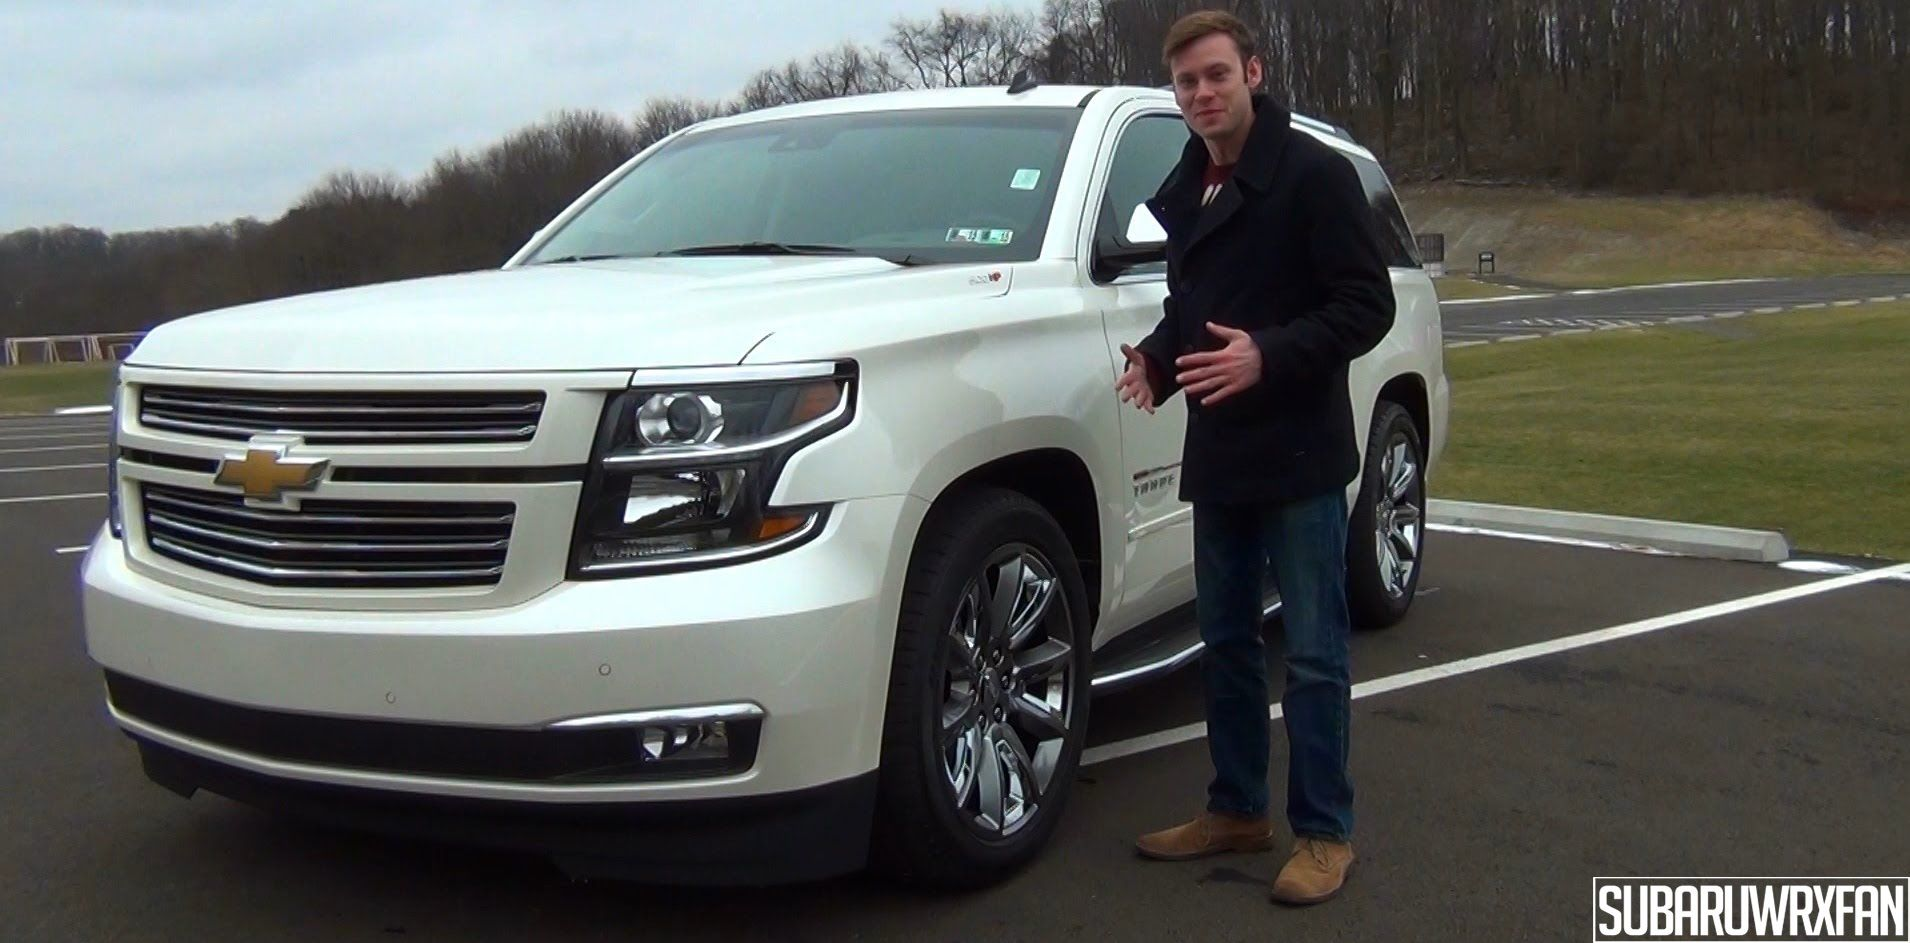 Review hsv supercharged 2015 chevrolet tahoe sport edition my review hsv supercharged 2015 chevrolet tahoe sport edition fandeluxe Gallery